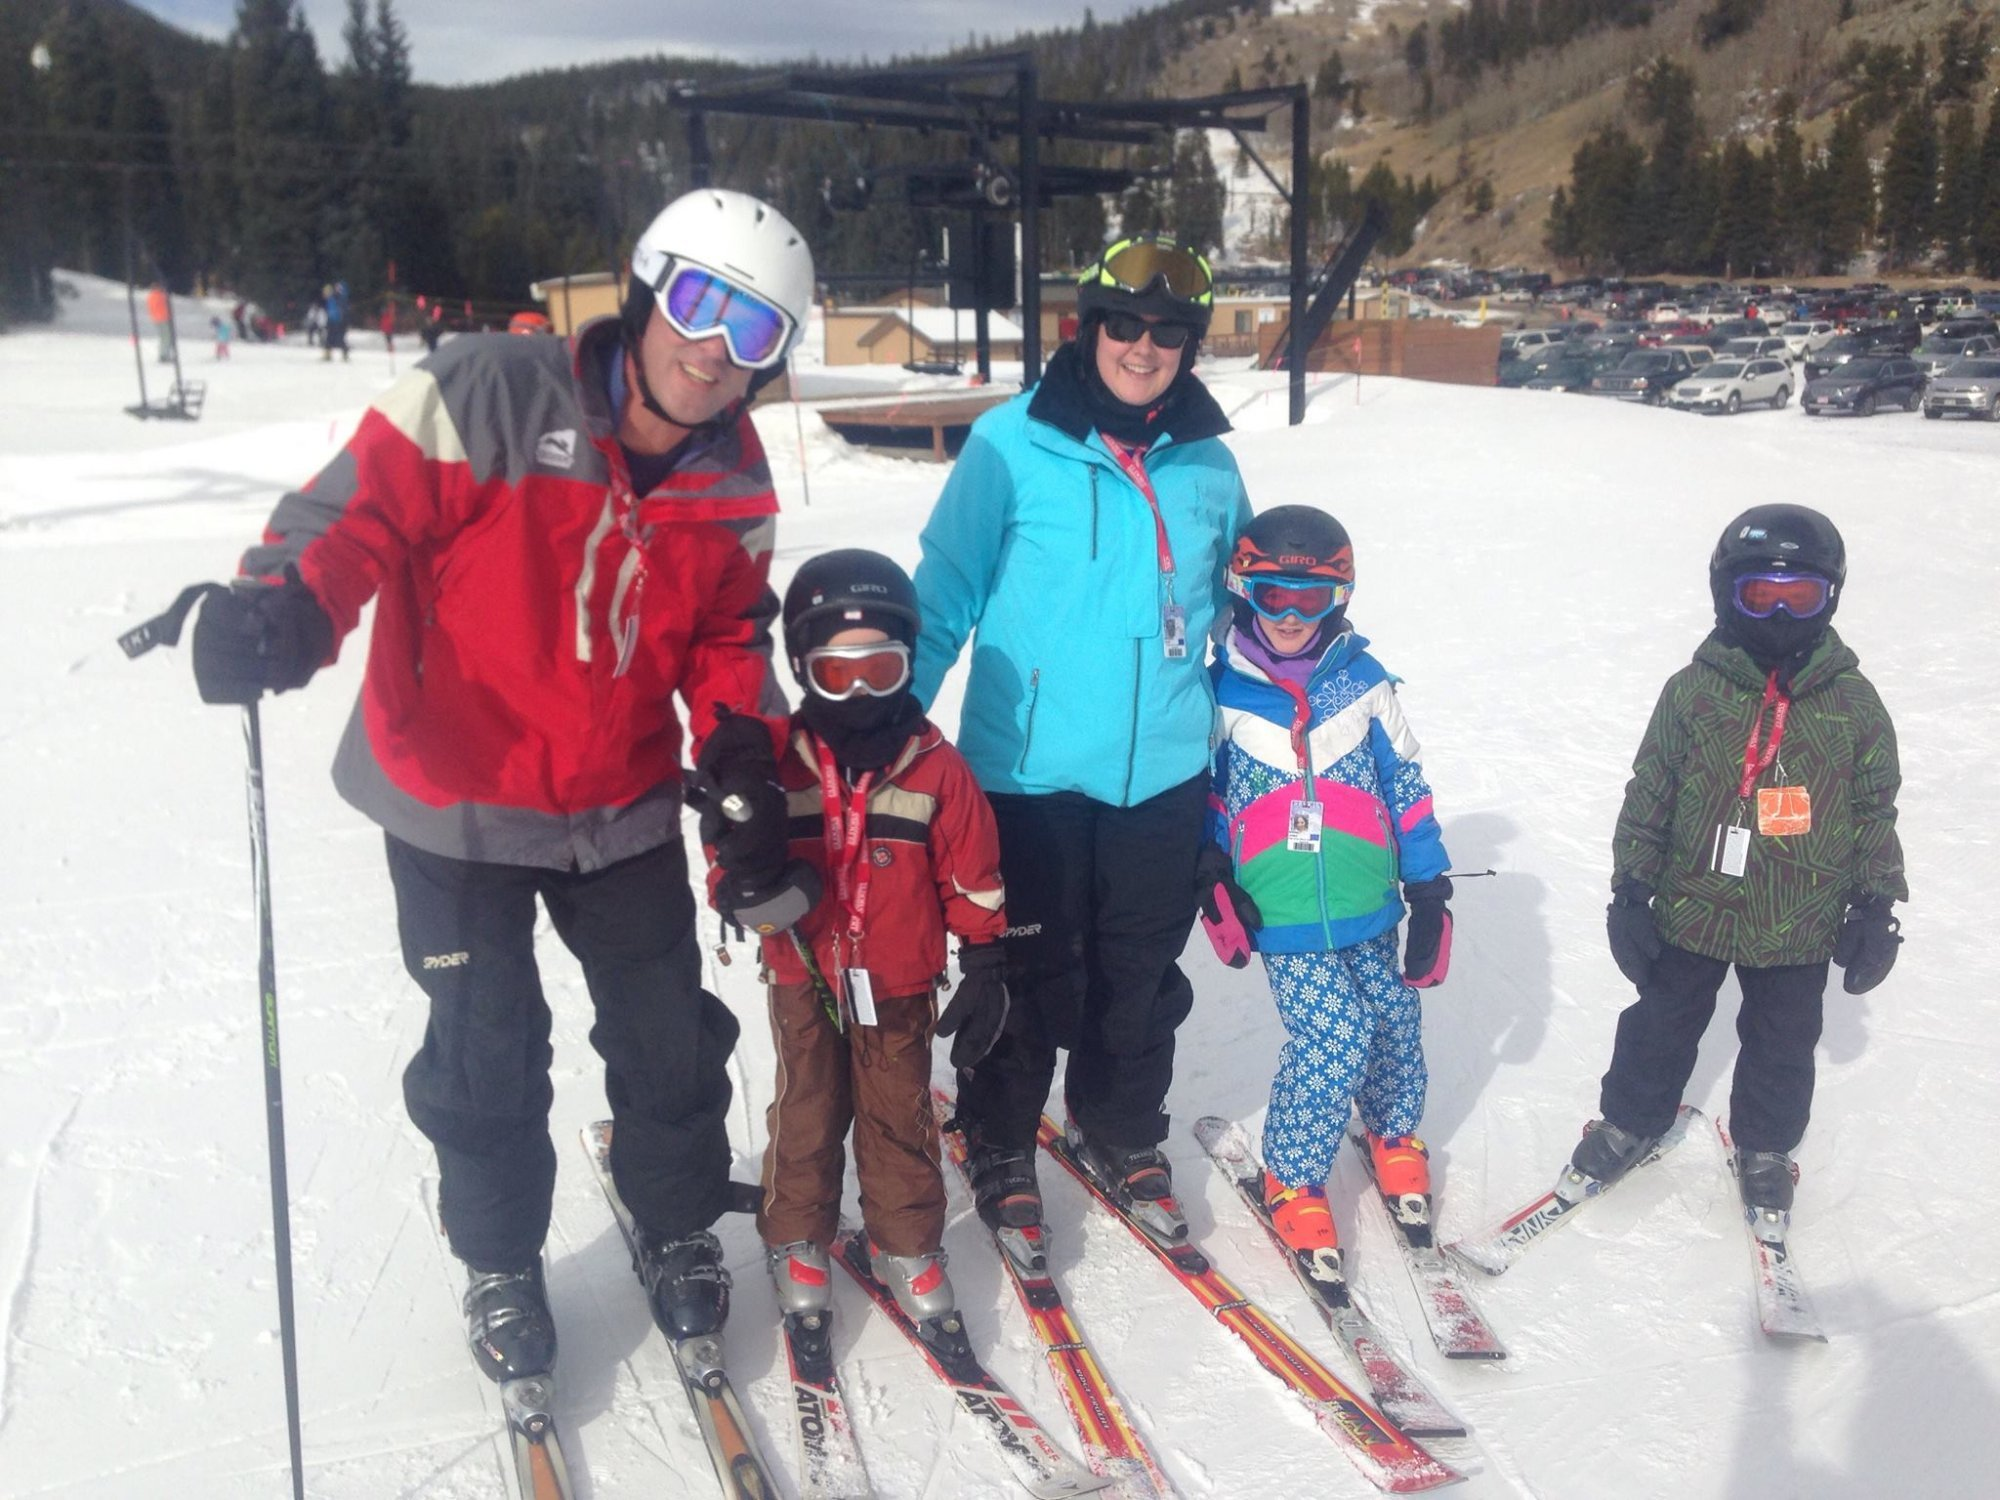 Kids skiing in Colorado